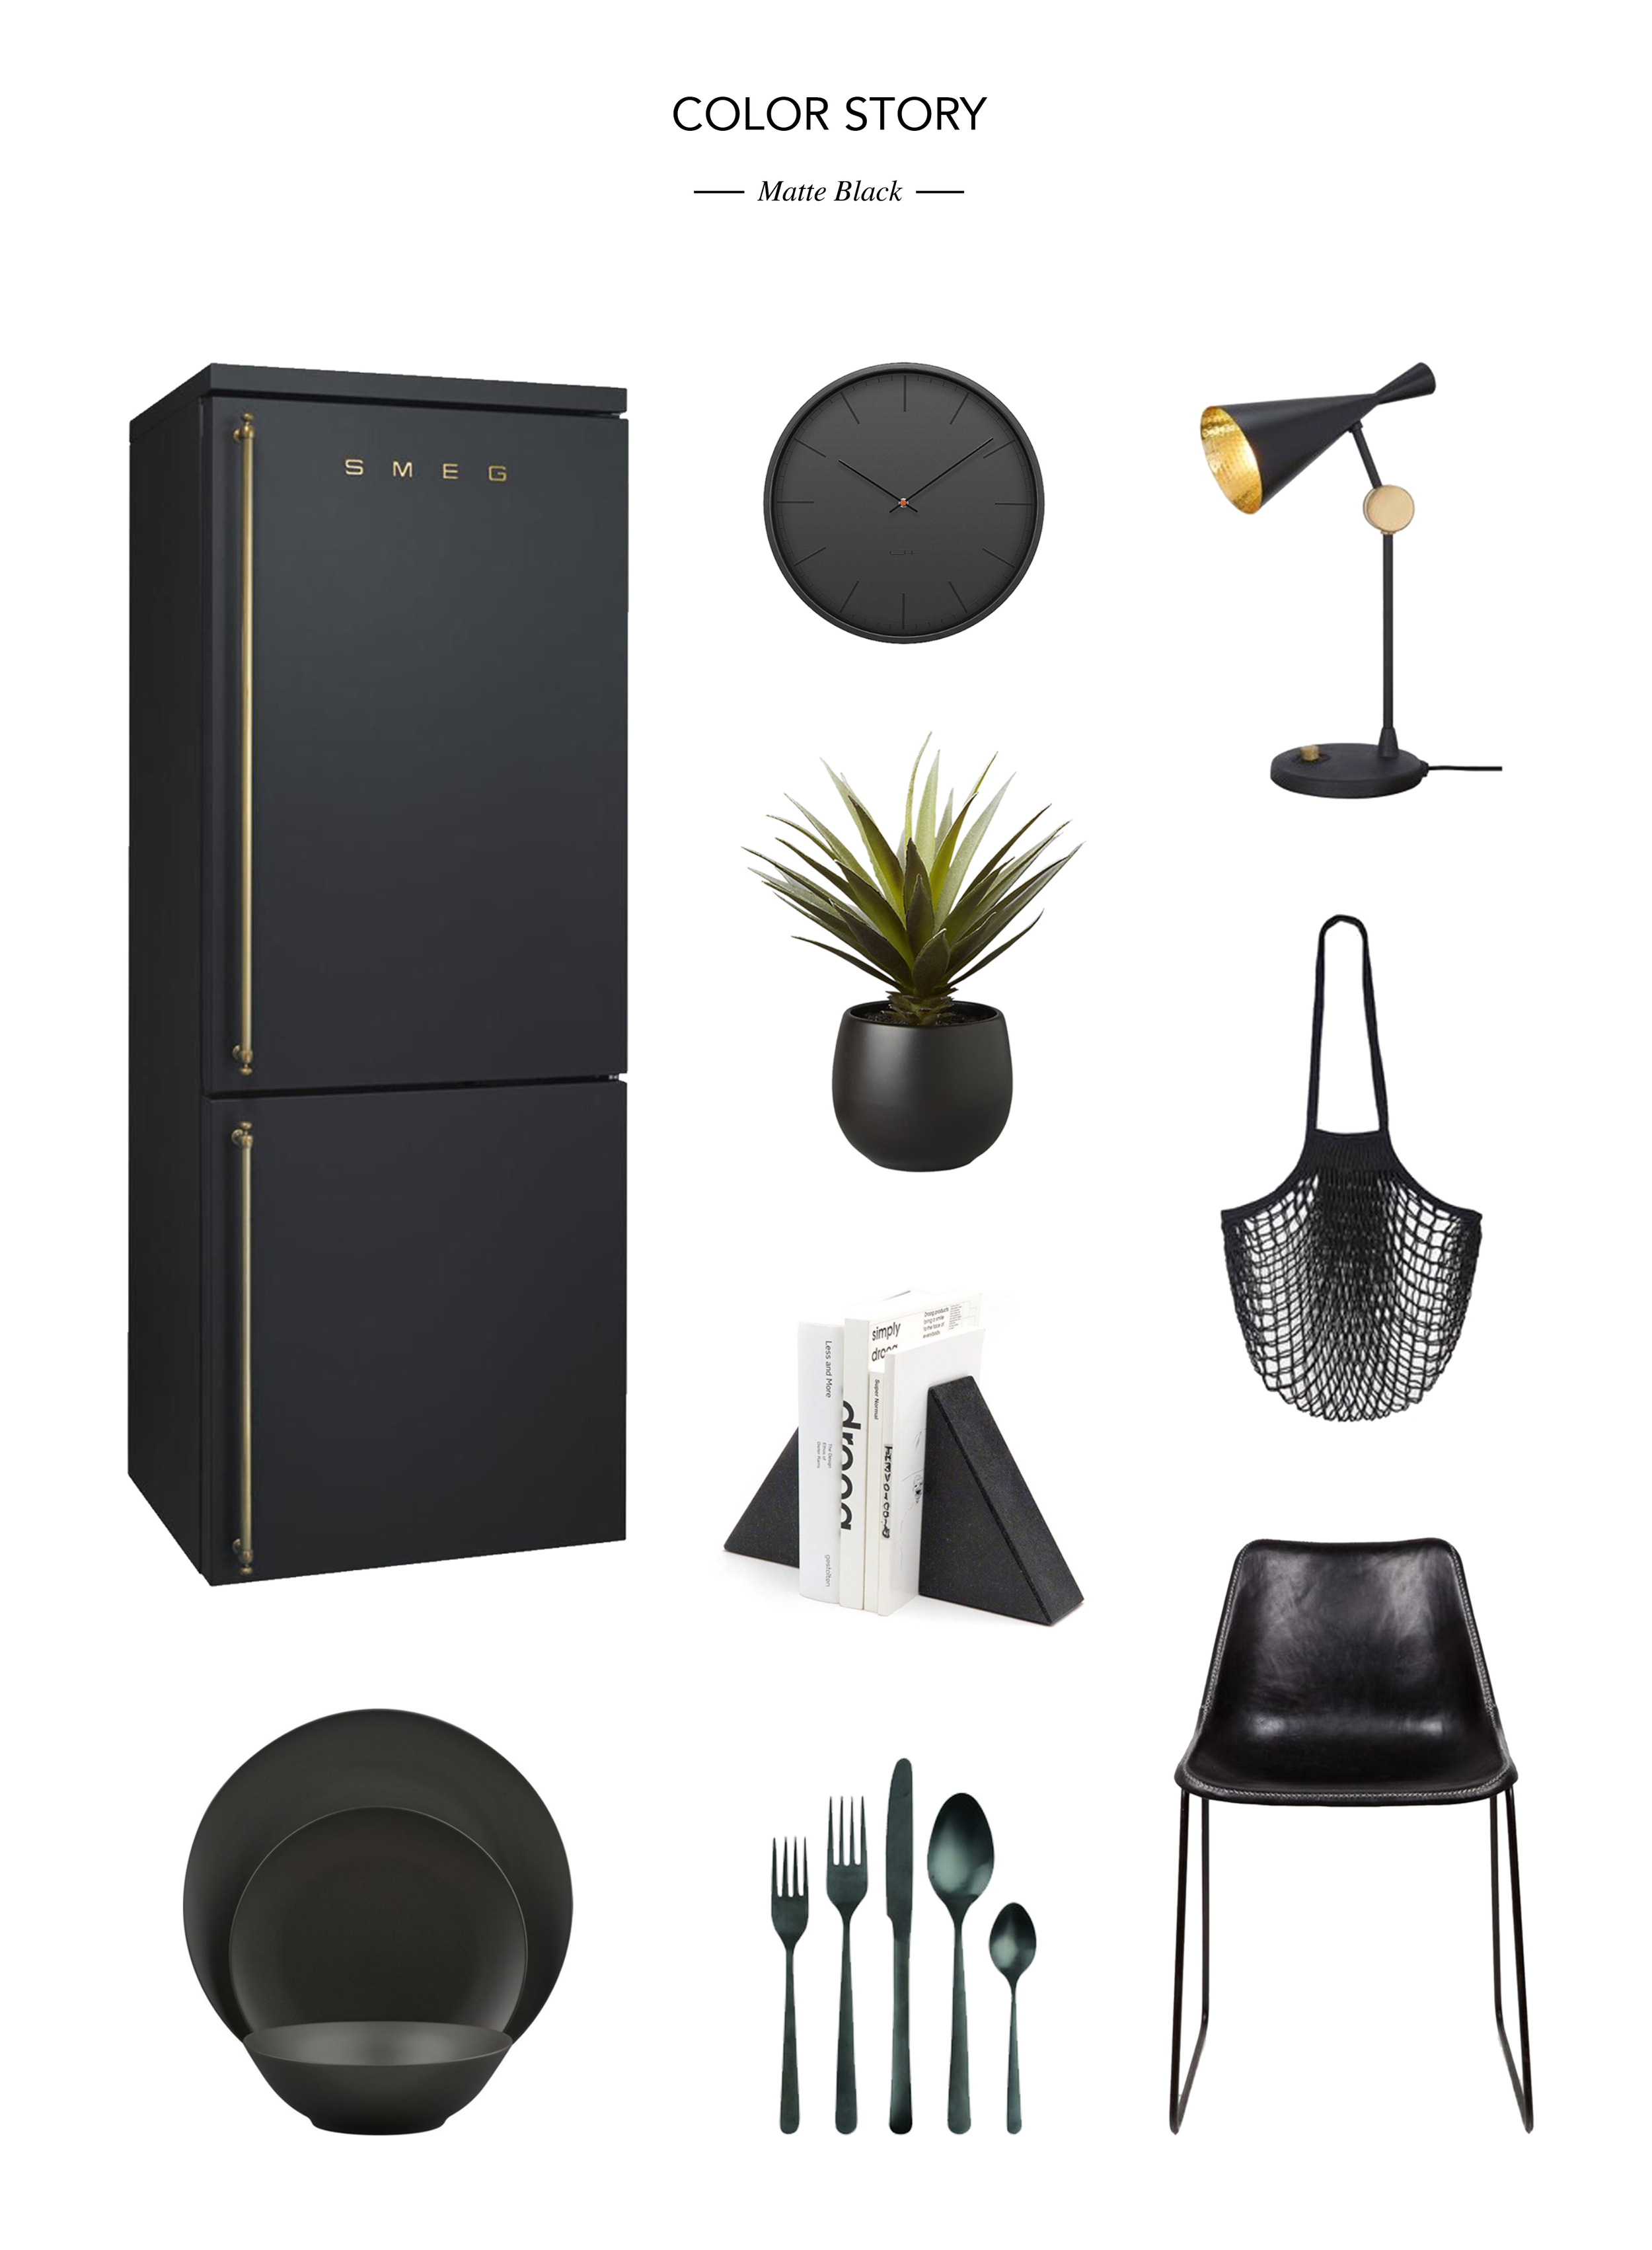 Fridge  //  Serveware  //  Clock  //  Planter  // Bookends  //  Cutlery  //  Lamp  //  Bag  //  Chair